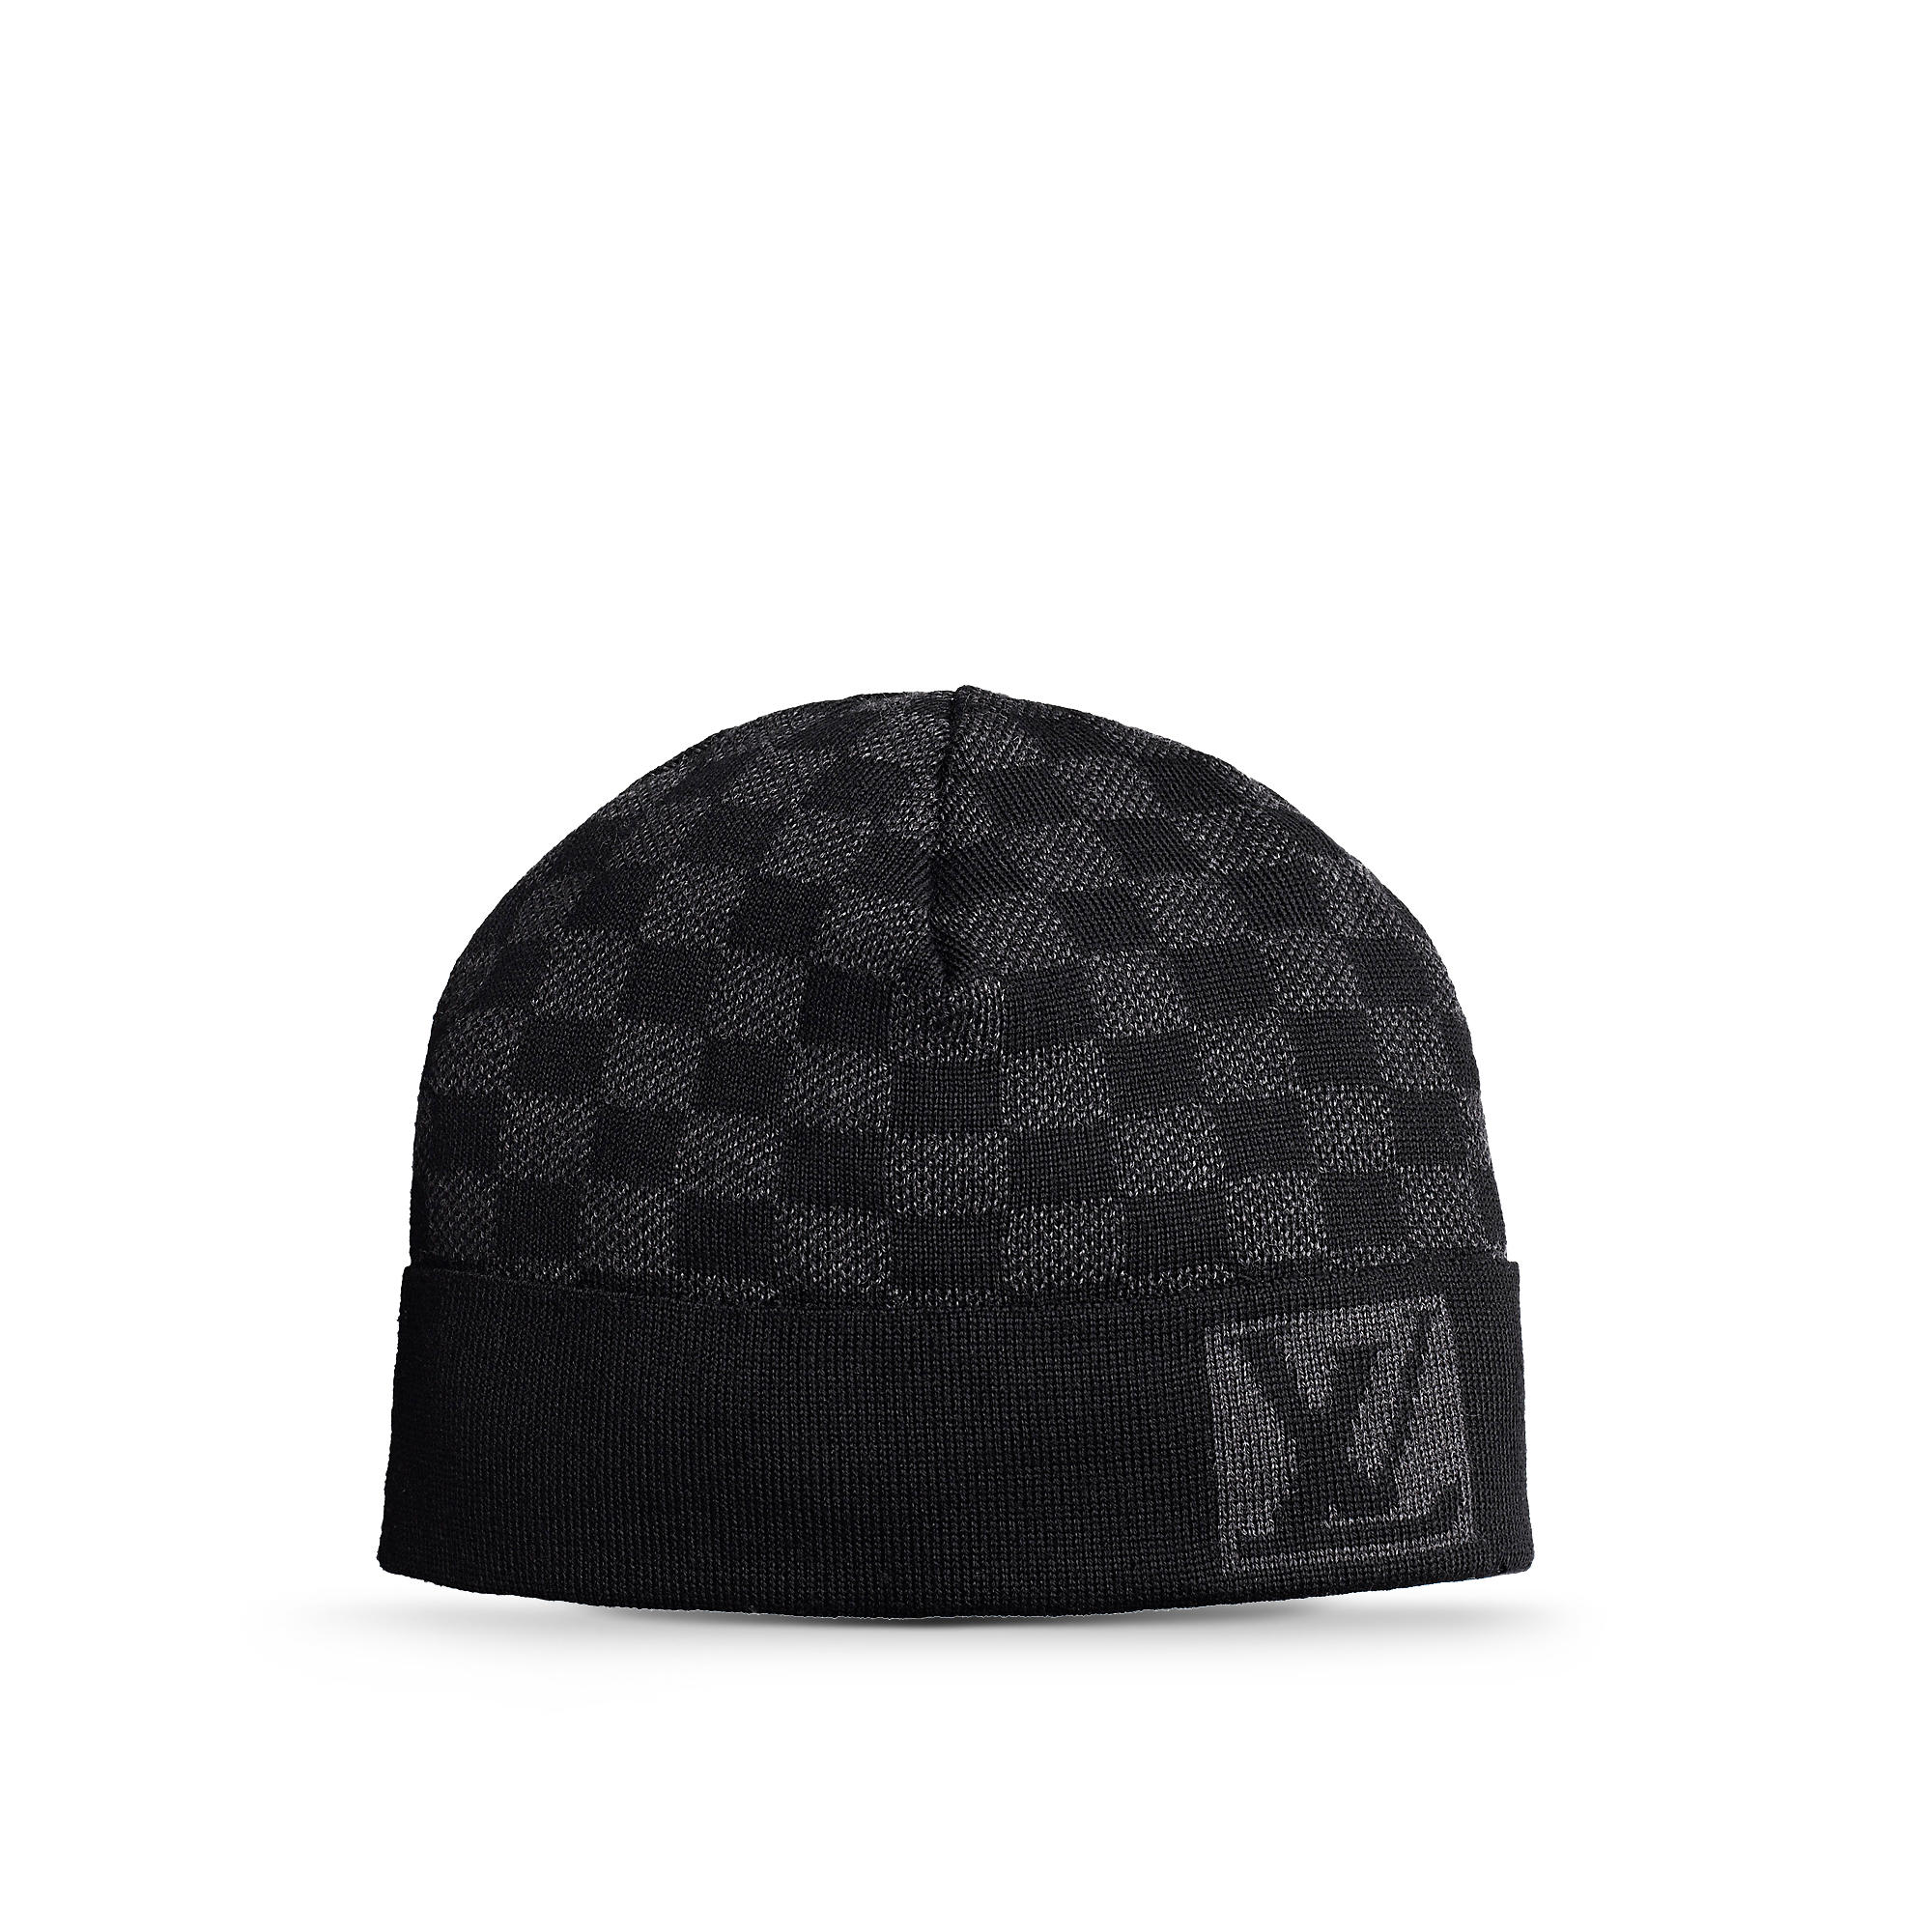 8b58429144d75 Louis Vuitton Skull cap NEW Size one size - Hats for Sale - Grailed